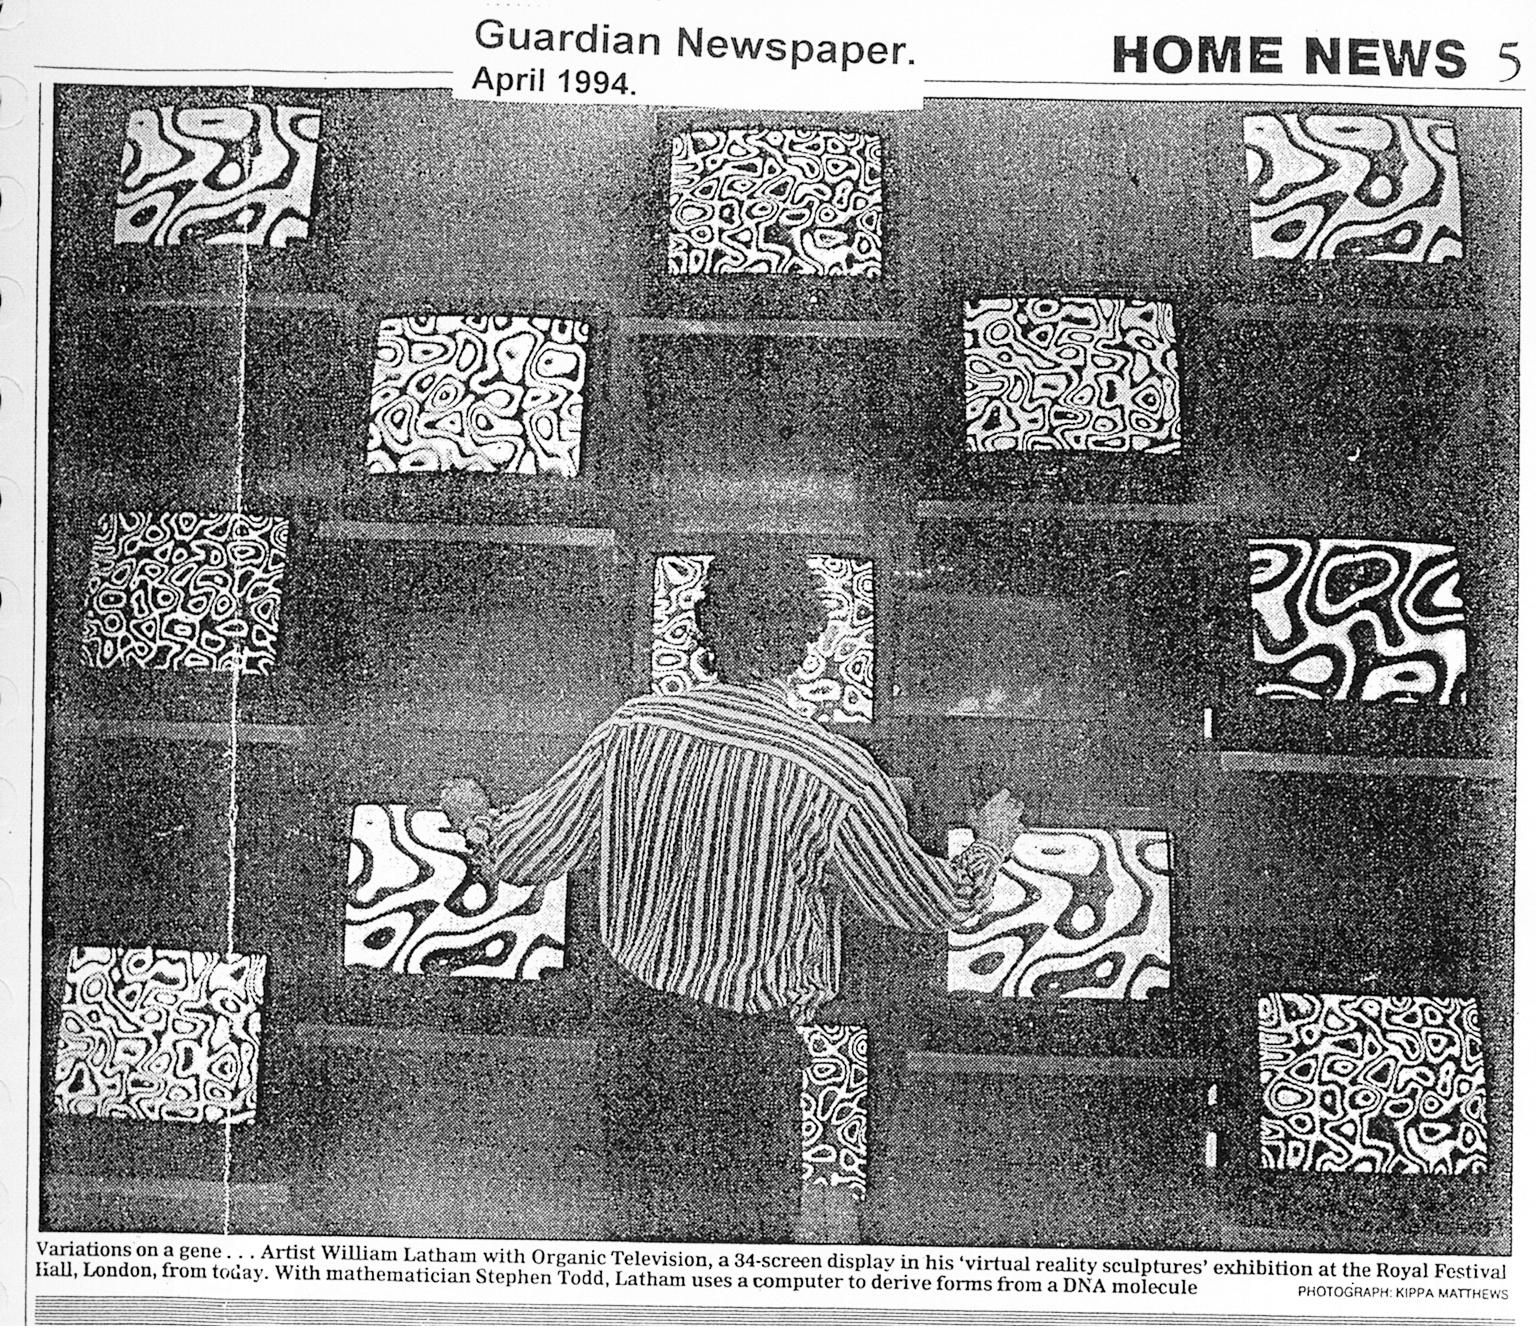 OrganicTVPress1994Q2No1